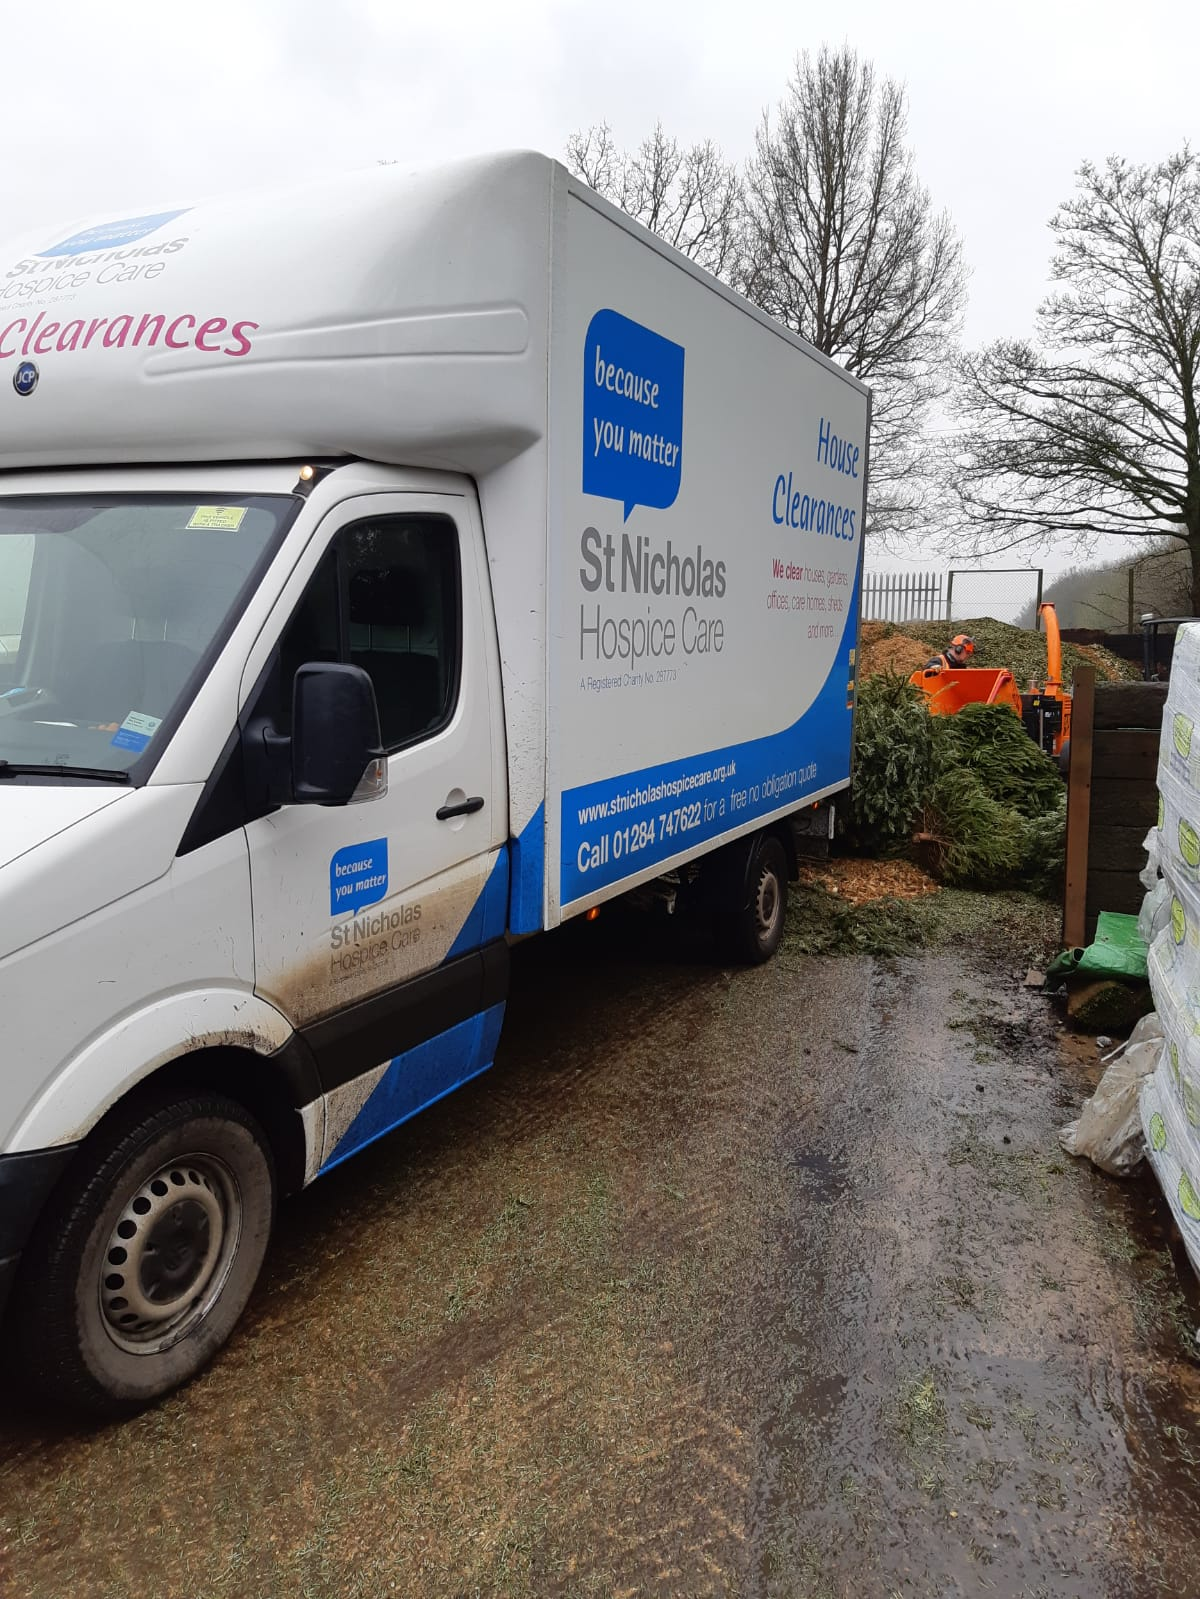 A 'treemendous' haul of Christmas trees leads to thousands